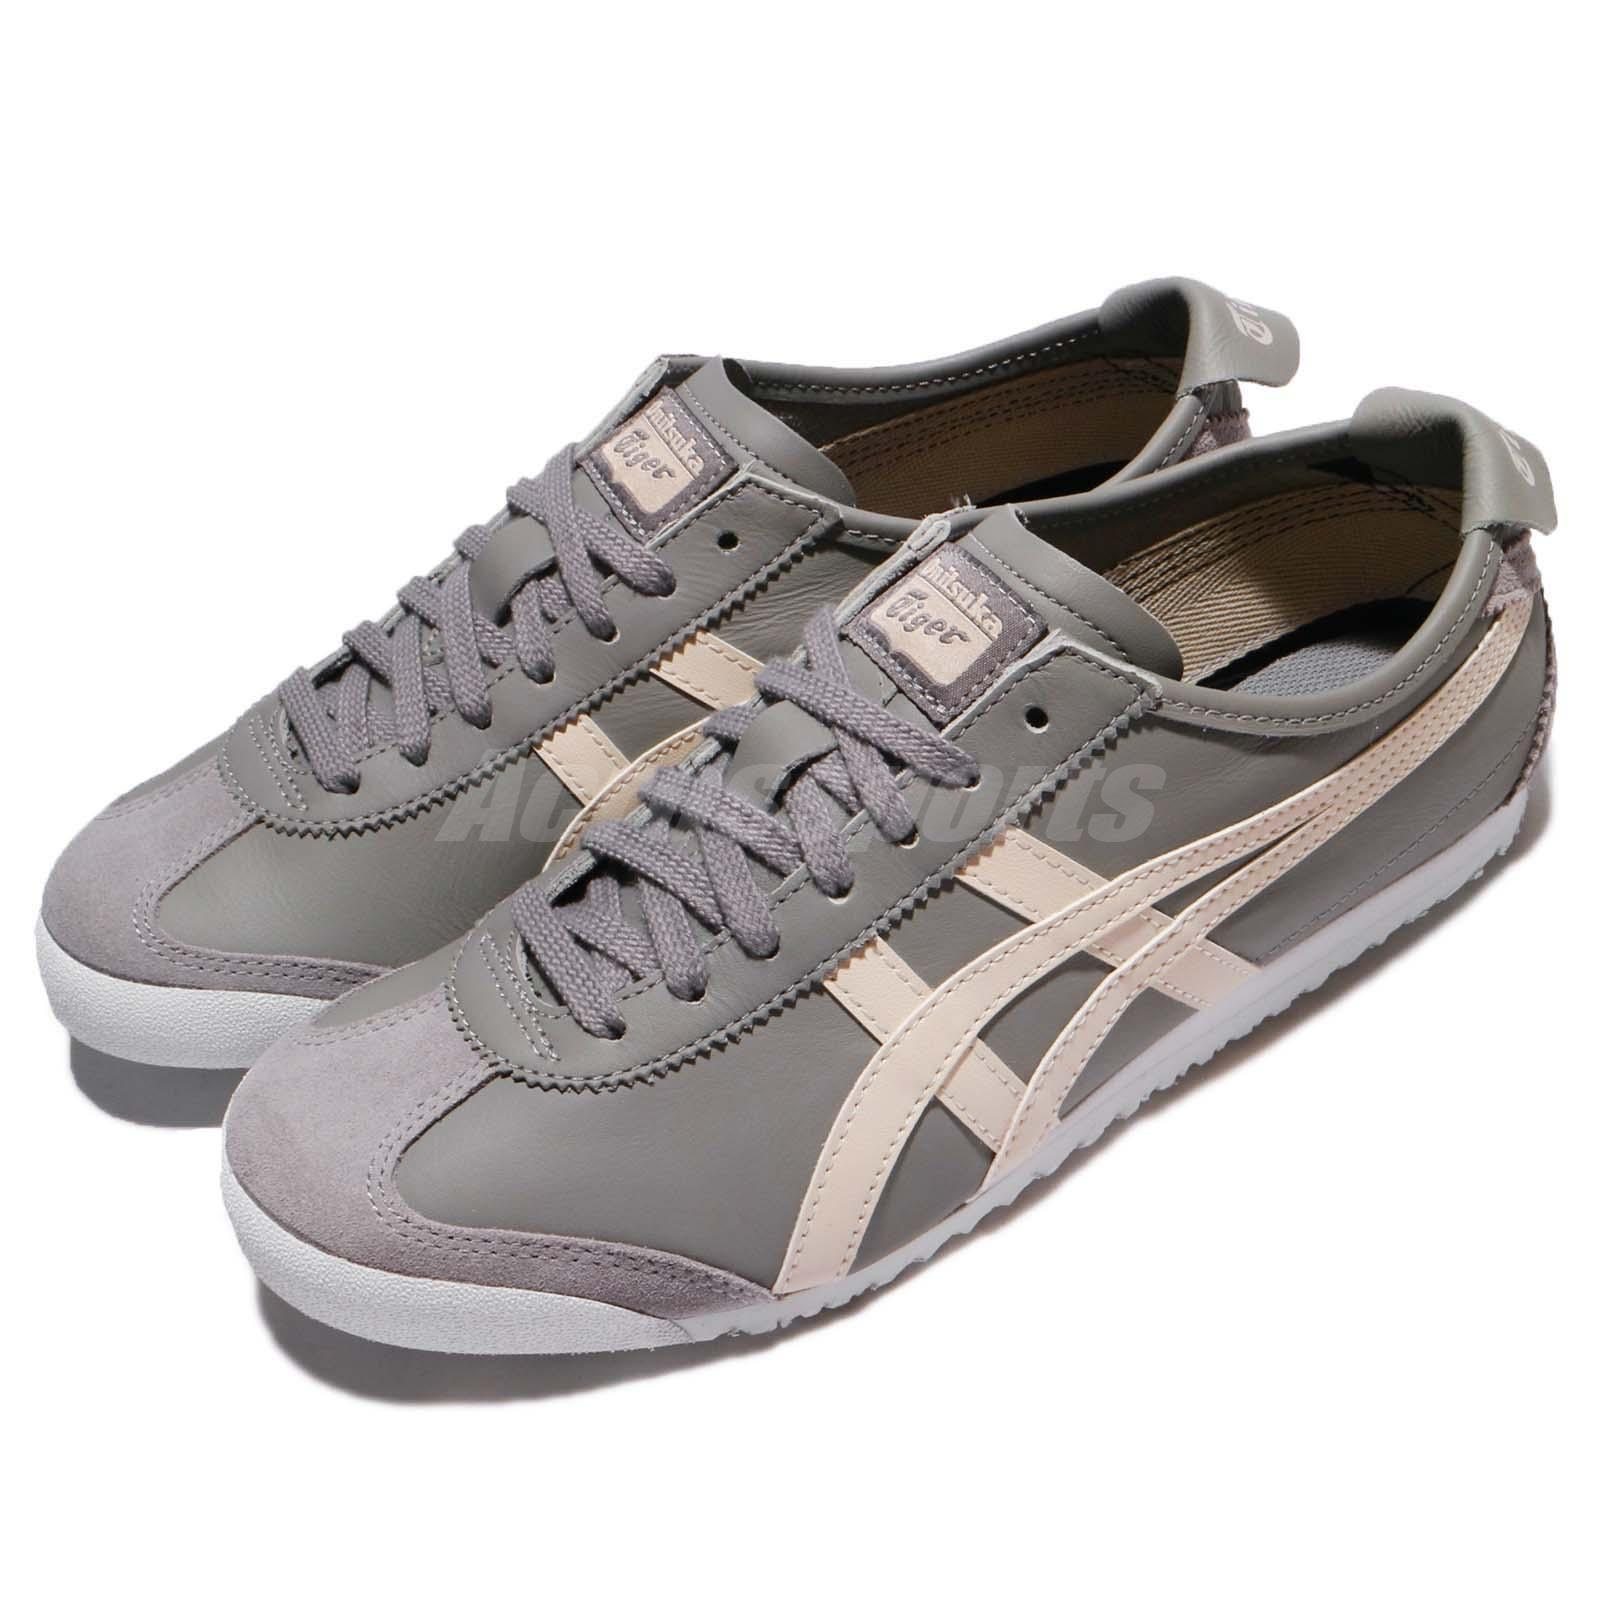 promo code ce955 f3058 Details about Asics Onitsuka Tiger Mexico 66 Aluminum Birch Leather Men  Shoes D4J2L-9602